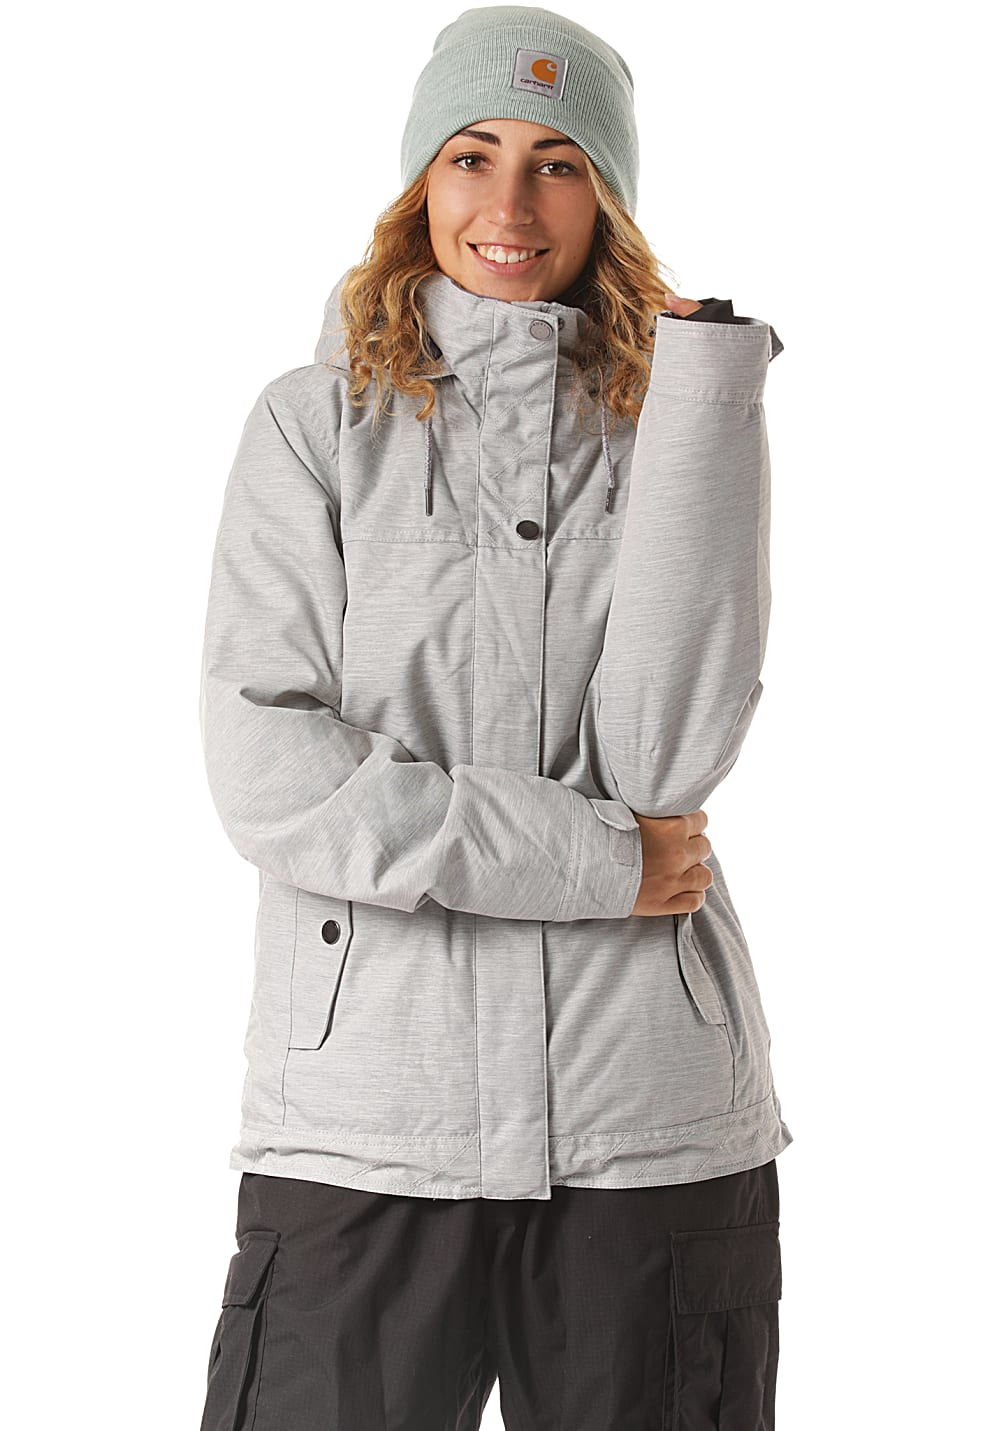 Jacken - Roxy Billie Snowboardjacke für Damen Grau  - Onlineshop Planet Sports